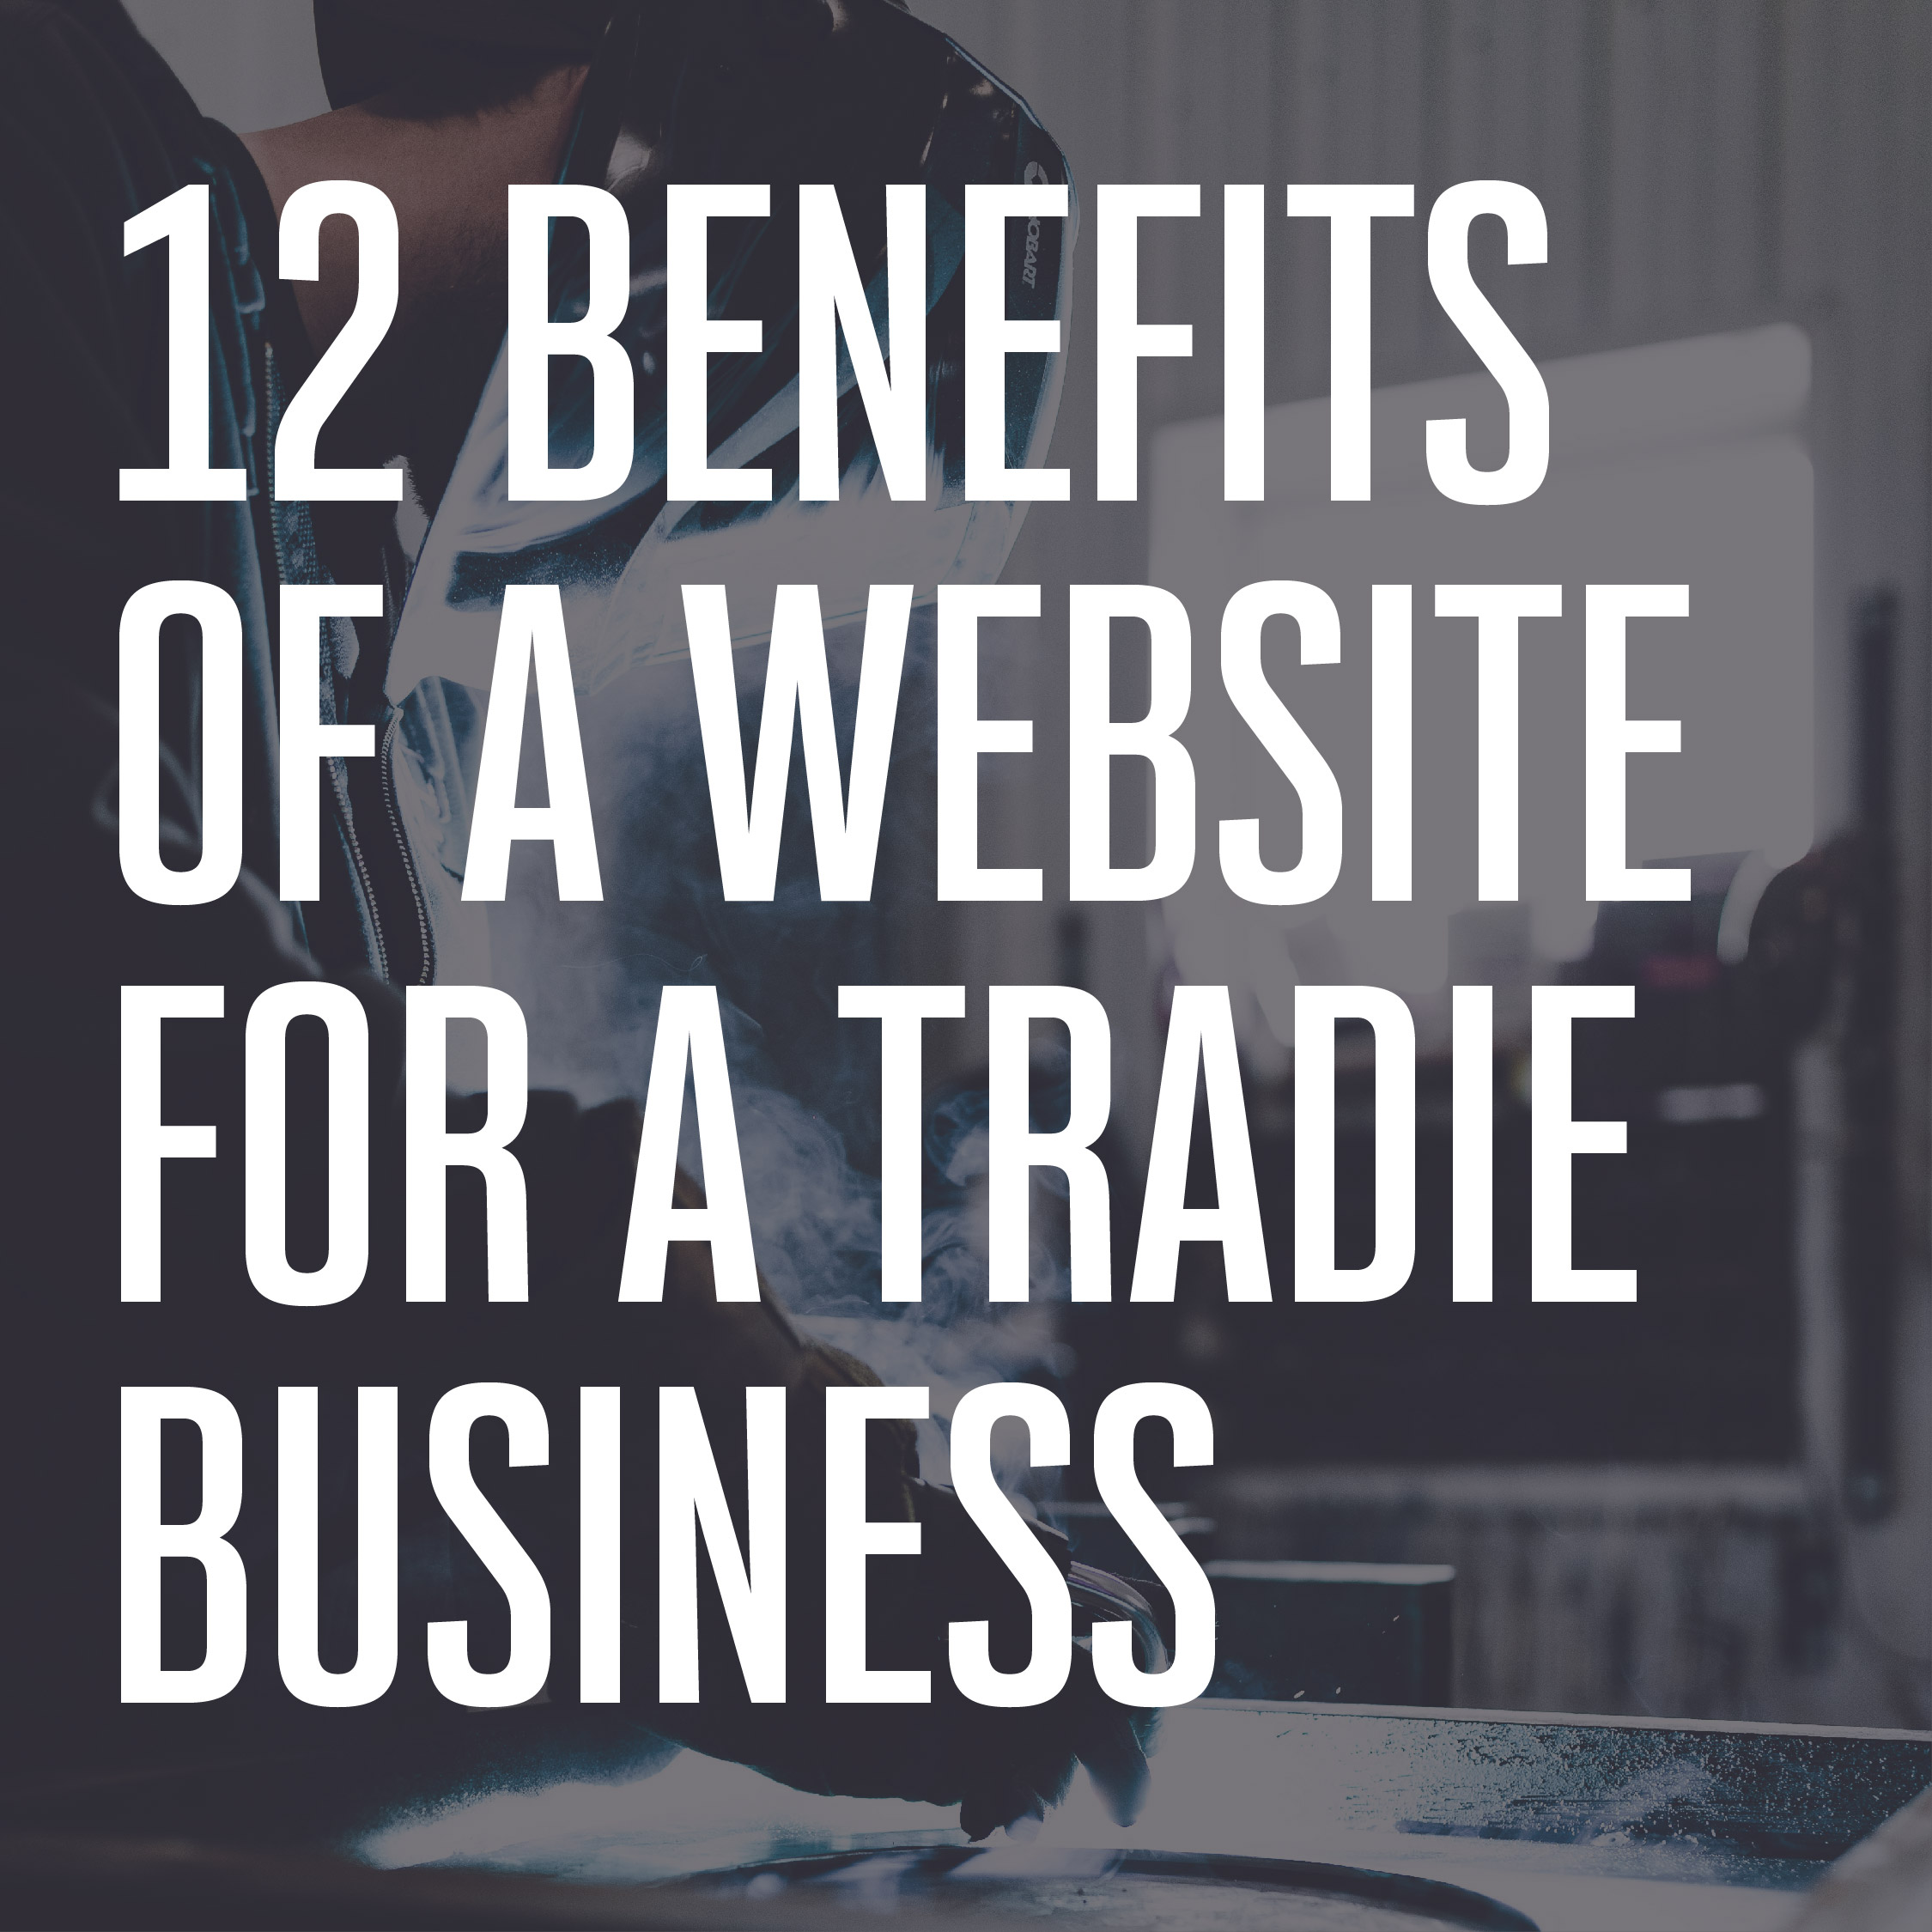 12 Benefits of a website for a tradie business